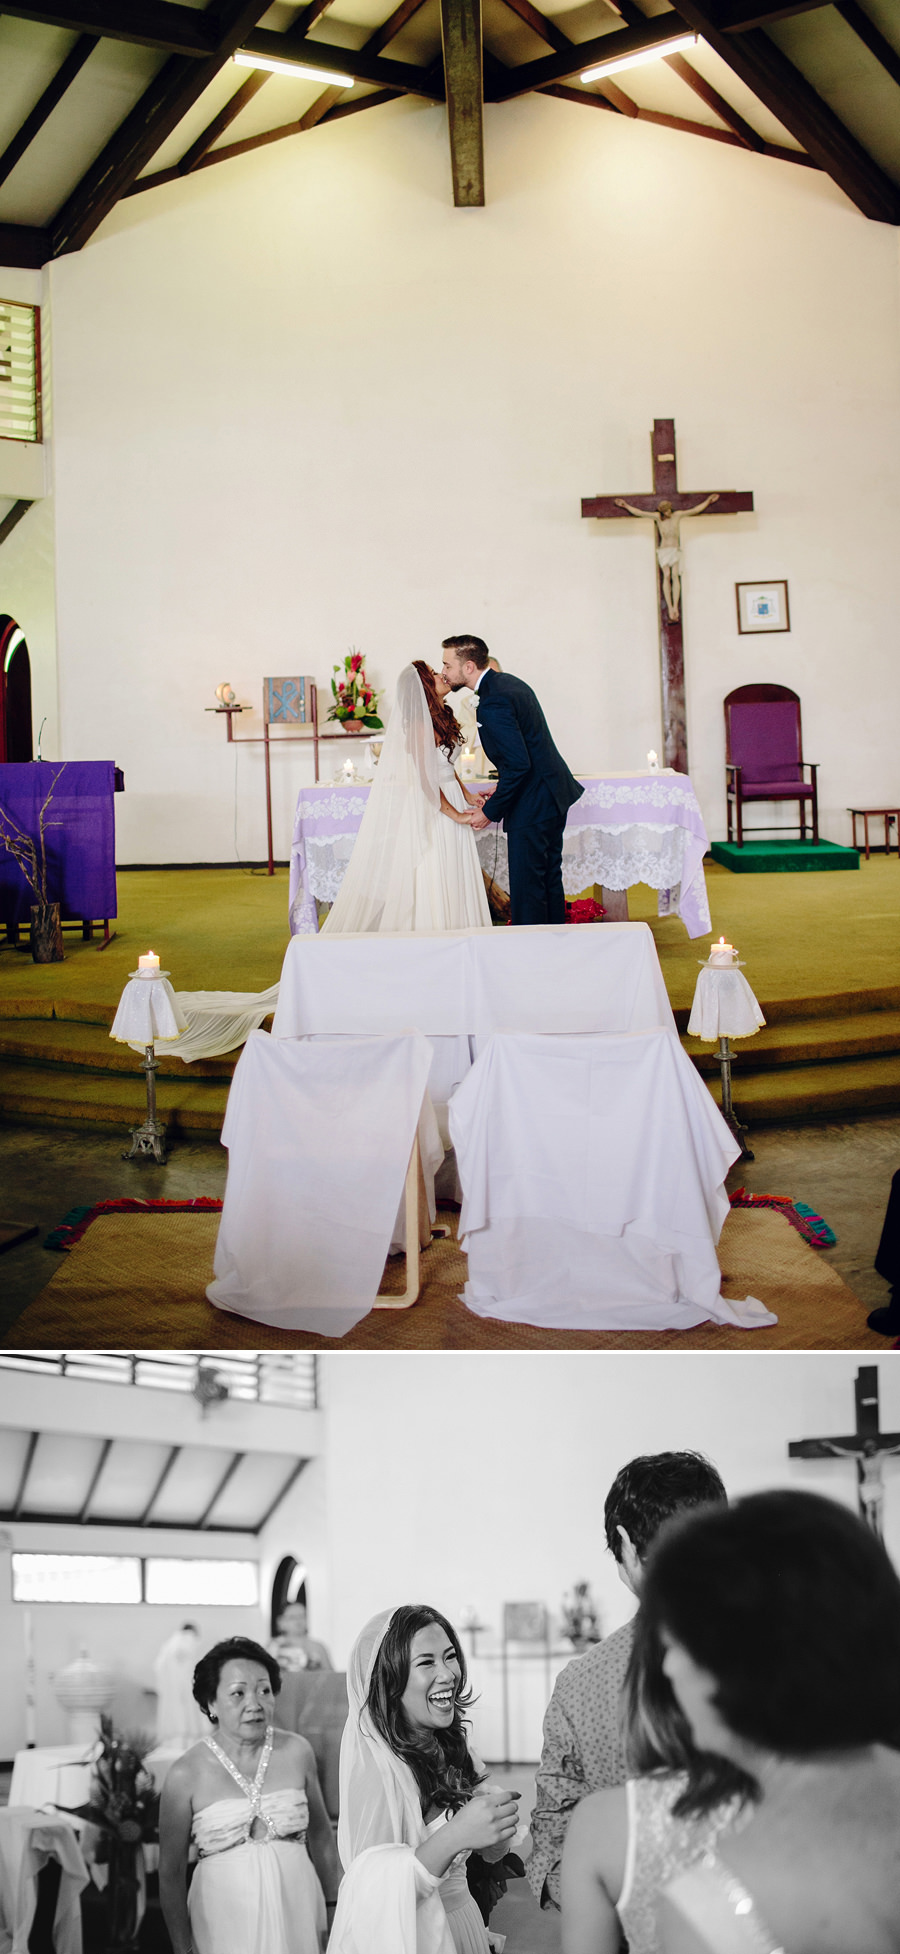 Catholic Wedding Photography: Kiss the bride